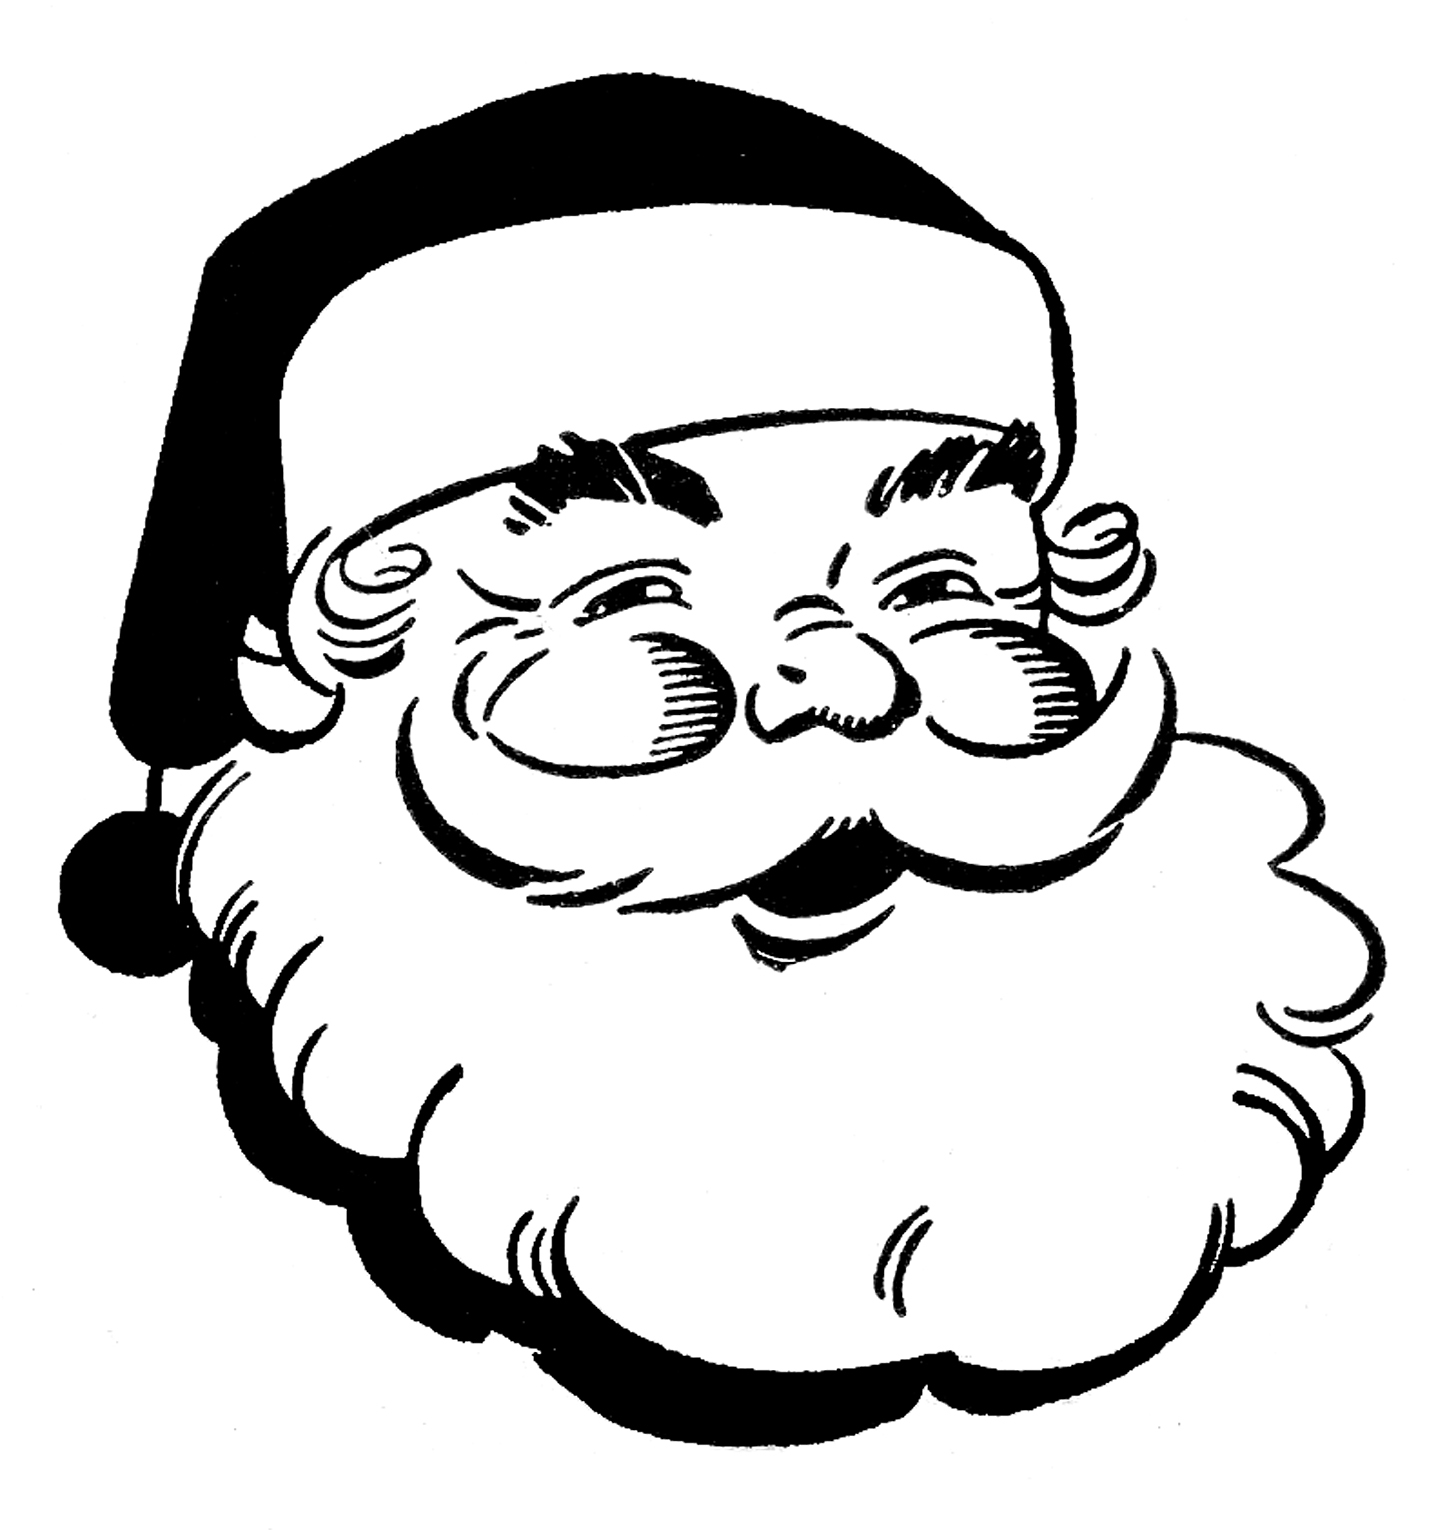 14 Cute Santa Retro Clipart! - The Graphics Fairy